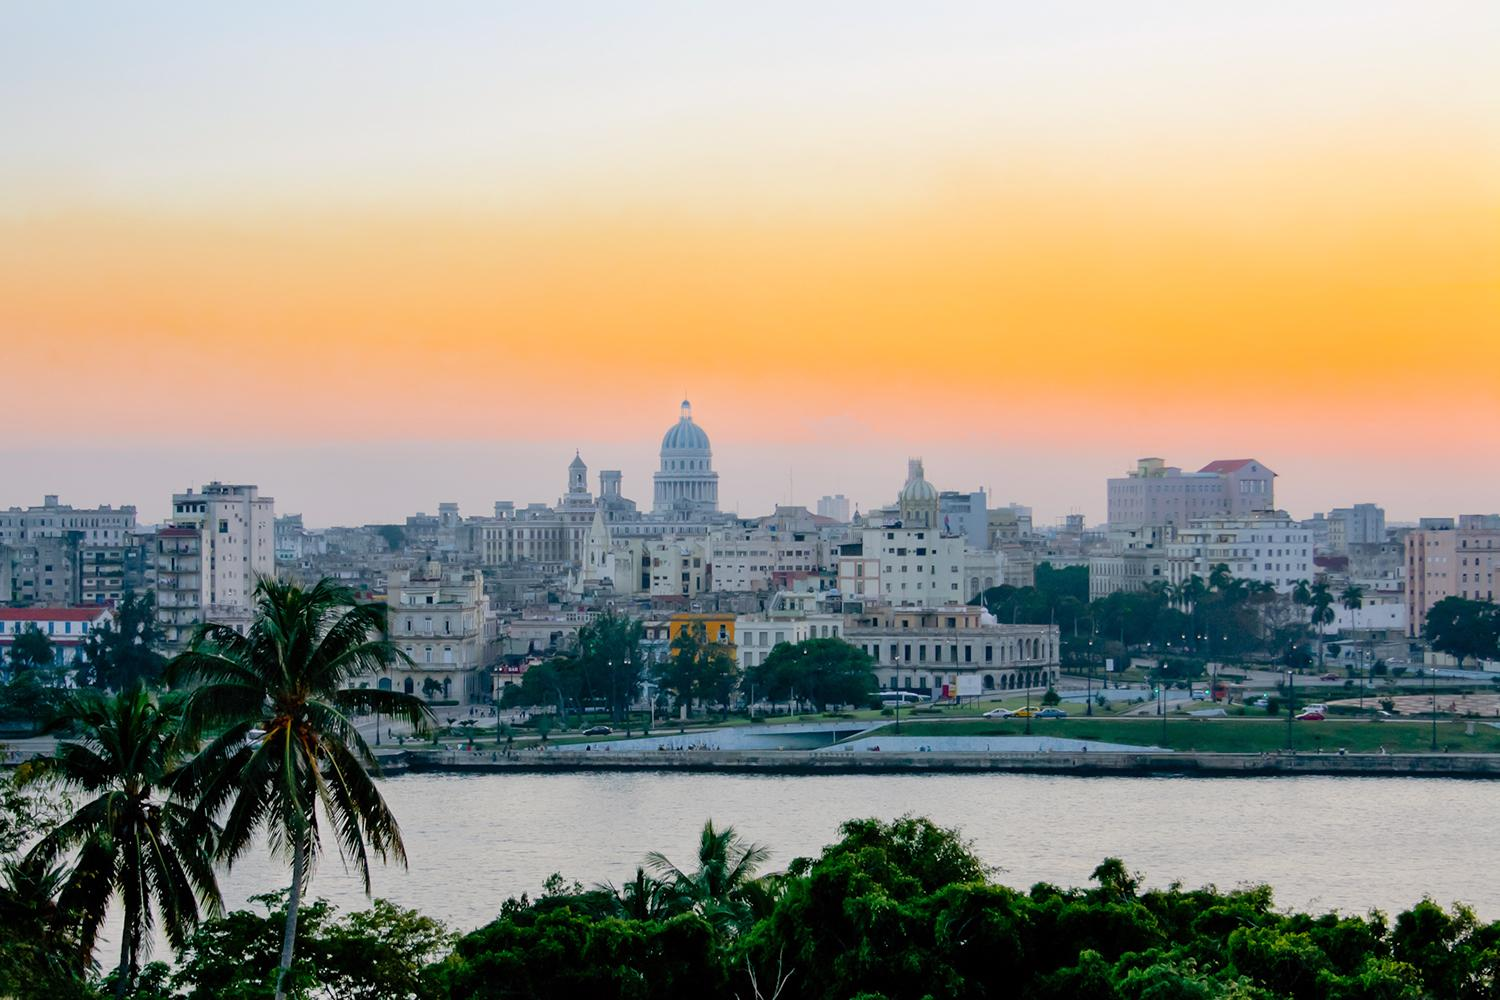 Airbnb Expands to Cuba, But There Will Be Challenges ...